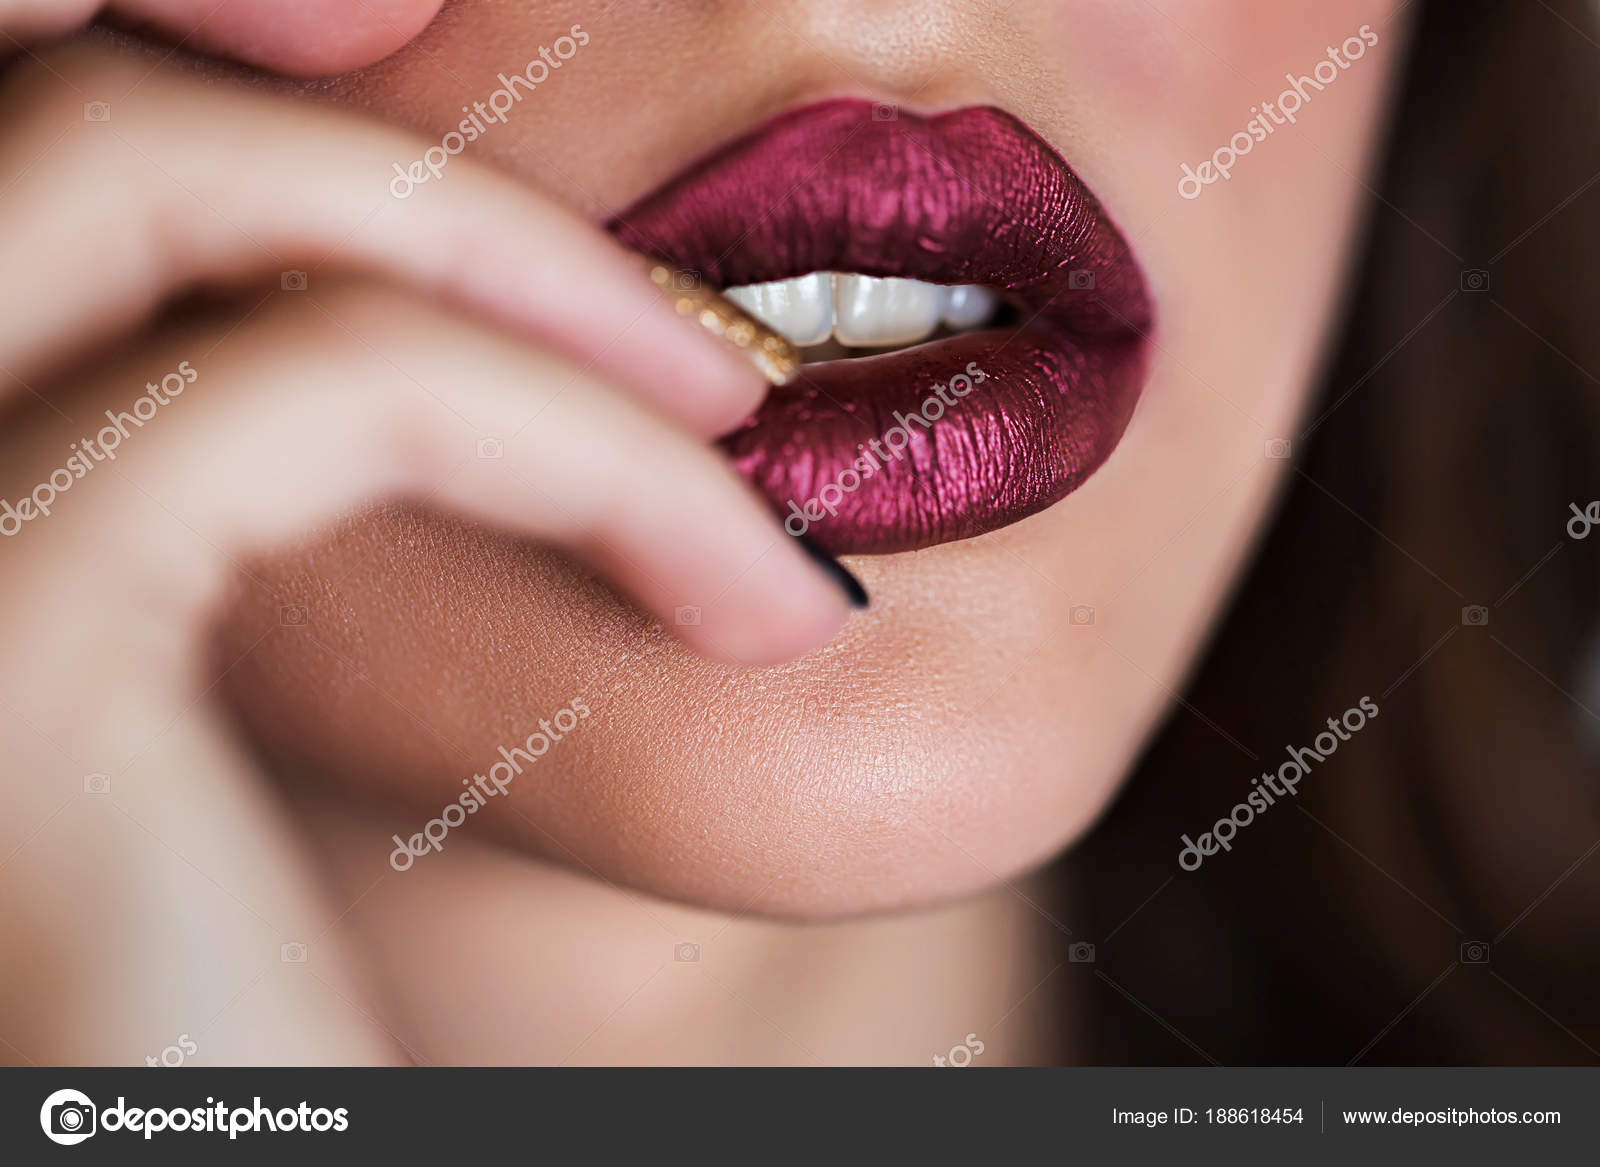 Close up of beautiful woman lips with lipstick. Open mouth. Cosmetology, fashion makeup concept. Beauty studio shot.– stock image